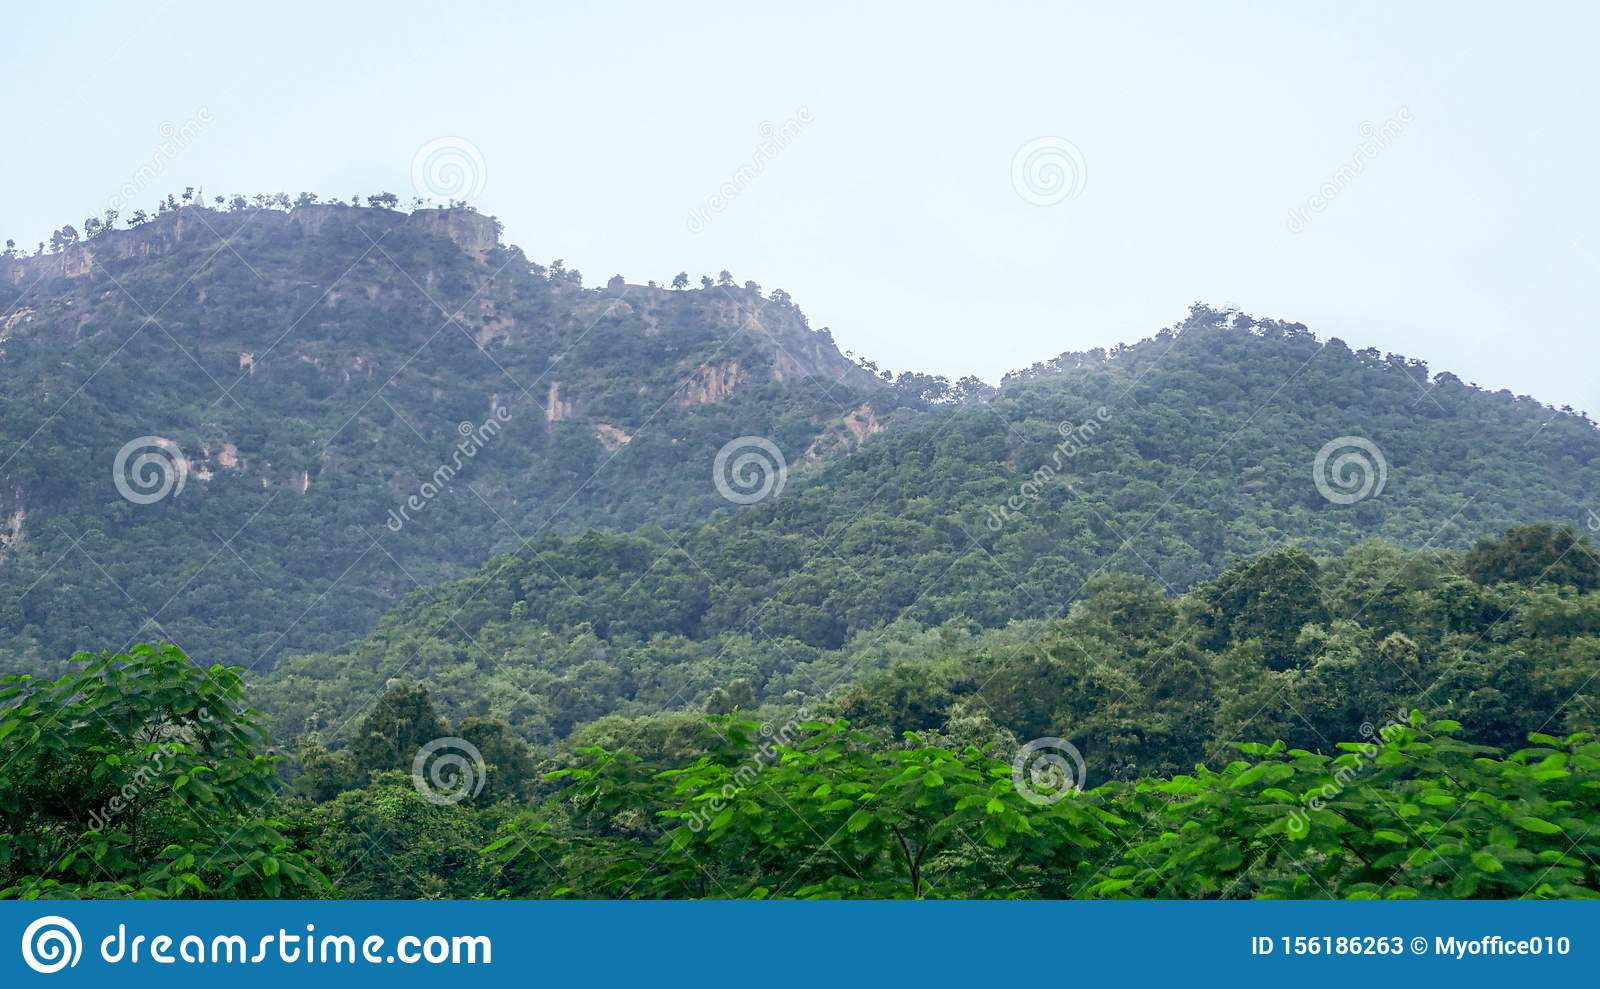 Two mountain peaks with forest at the base at Maharashtra, India.